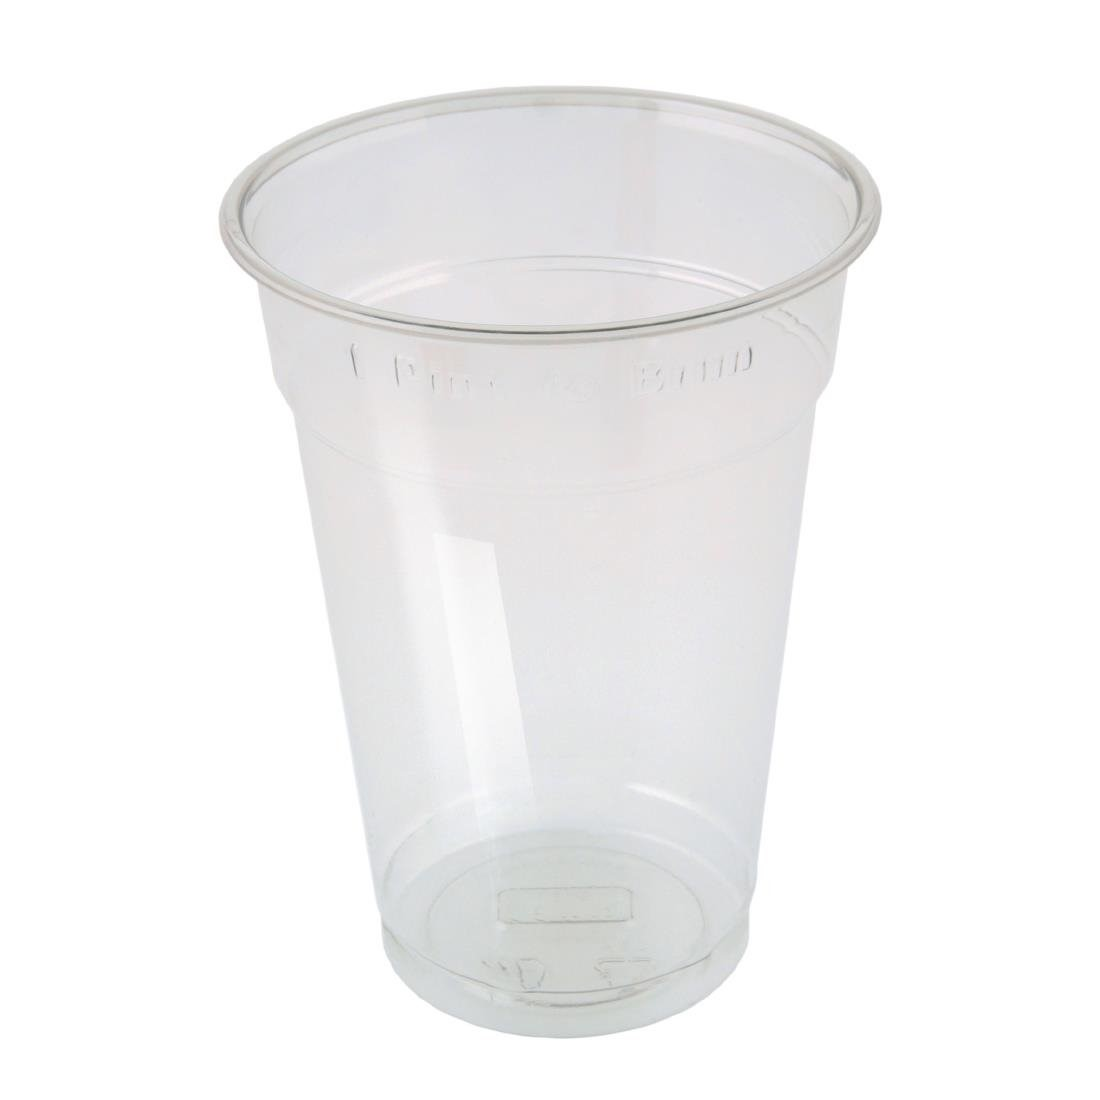 Disposable Pint Glasses Fill To Brim x 50